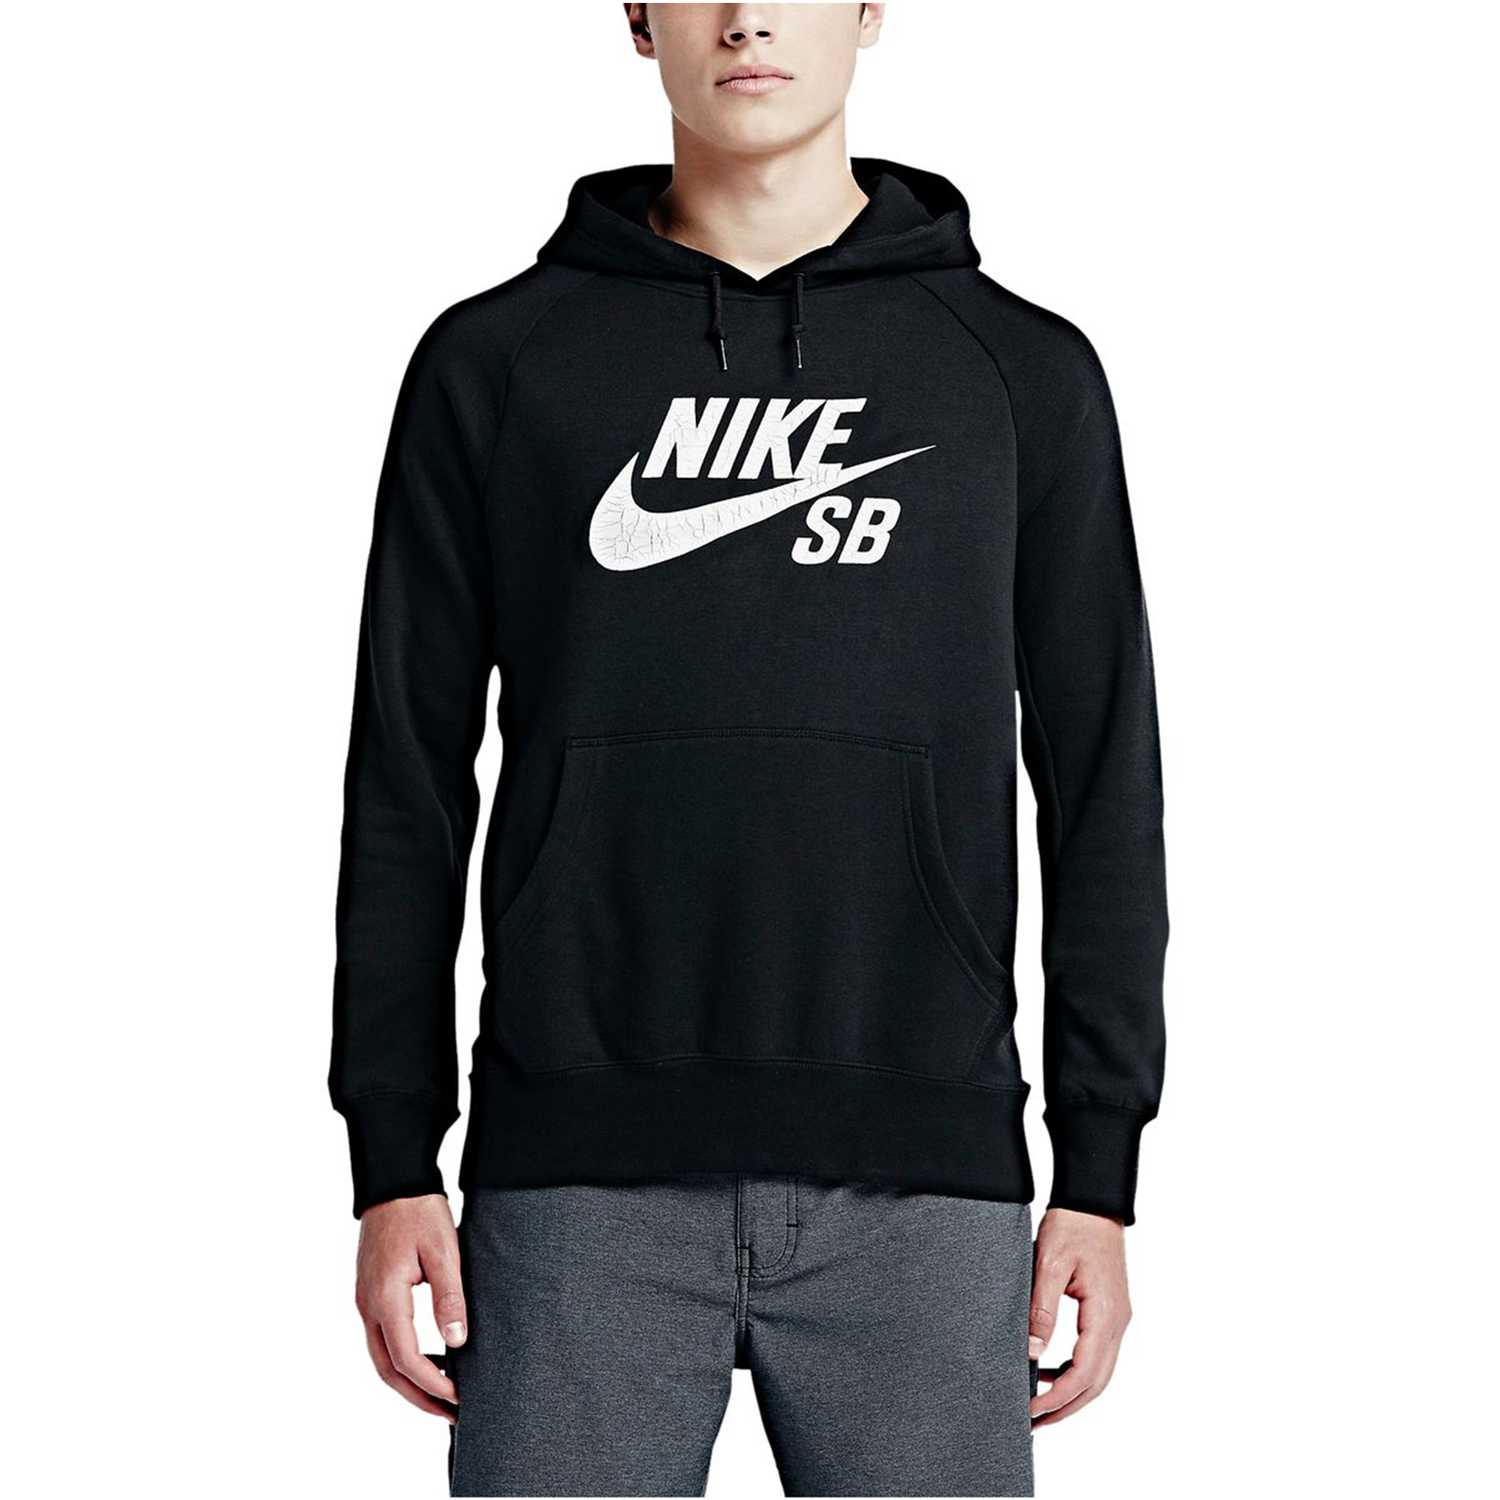 the best attitude a4fe9 e0e1b Polera de Hombre Nike Negro  Blanco sb icon crackle po hoody